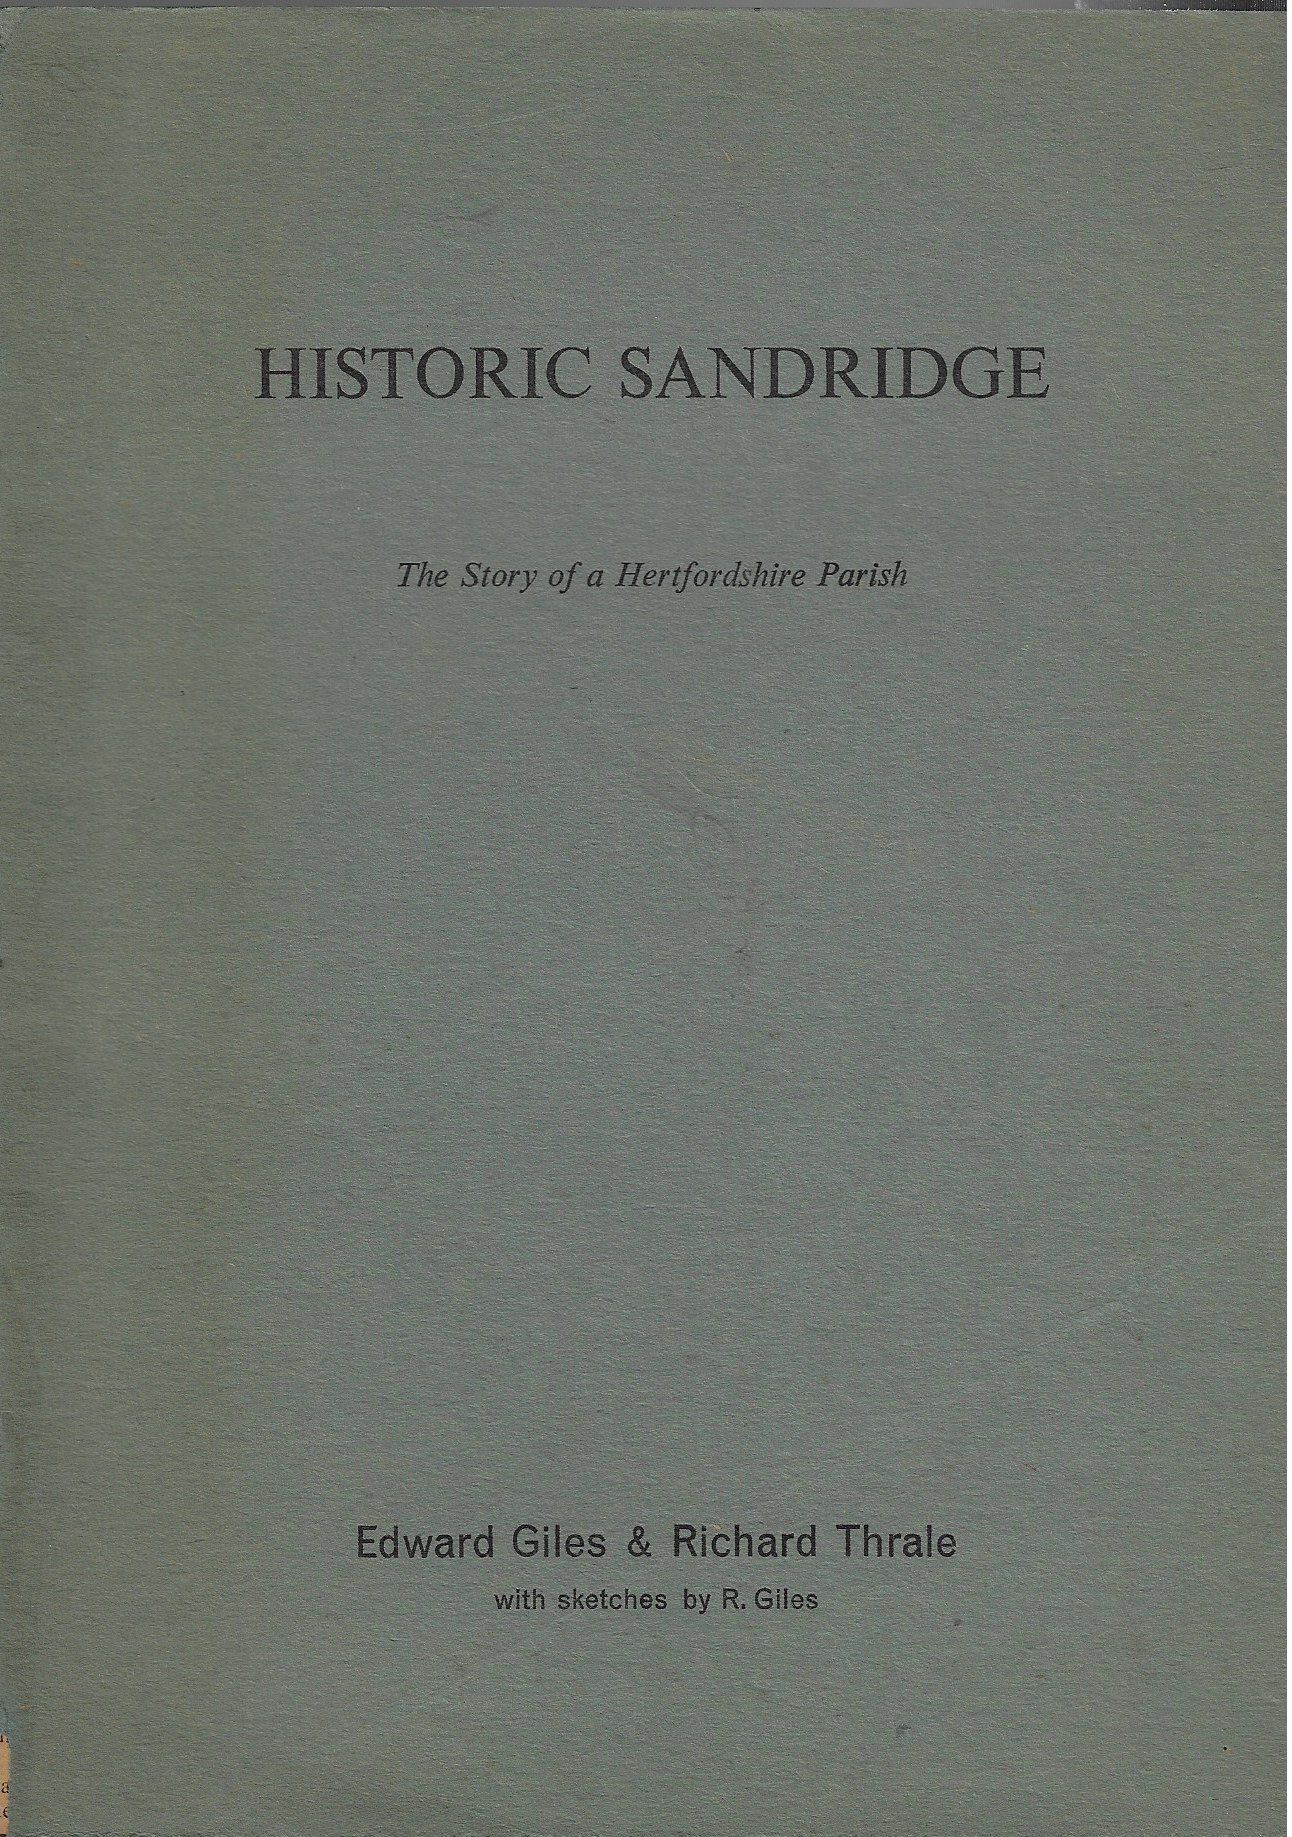 Image for Historic Sandridge The story of a Hertfordshire parish with some sketches by R. Giles